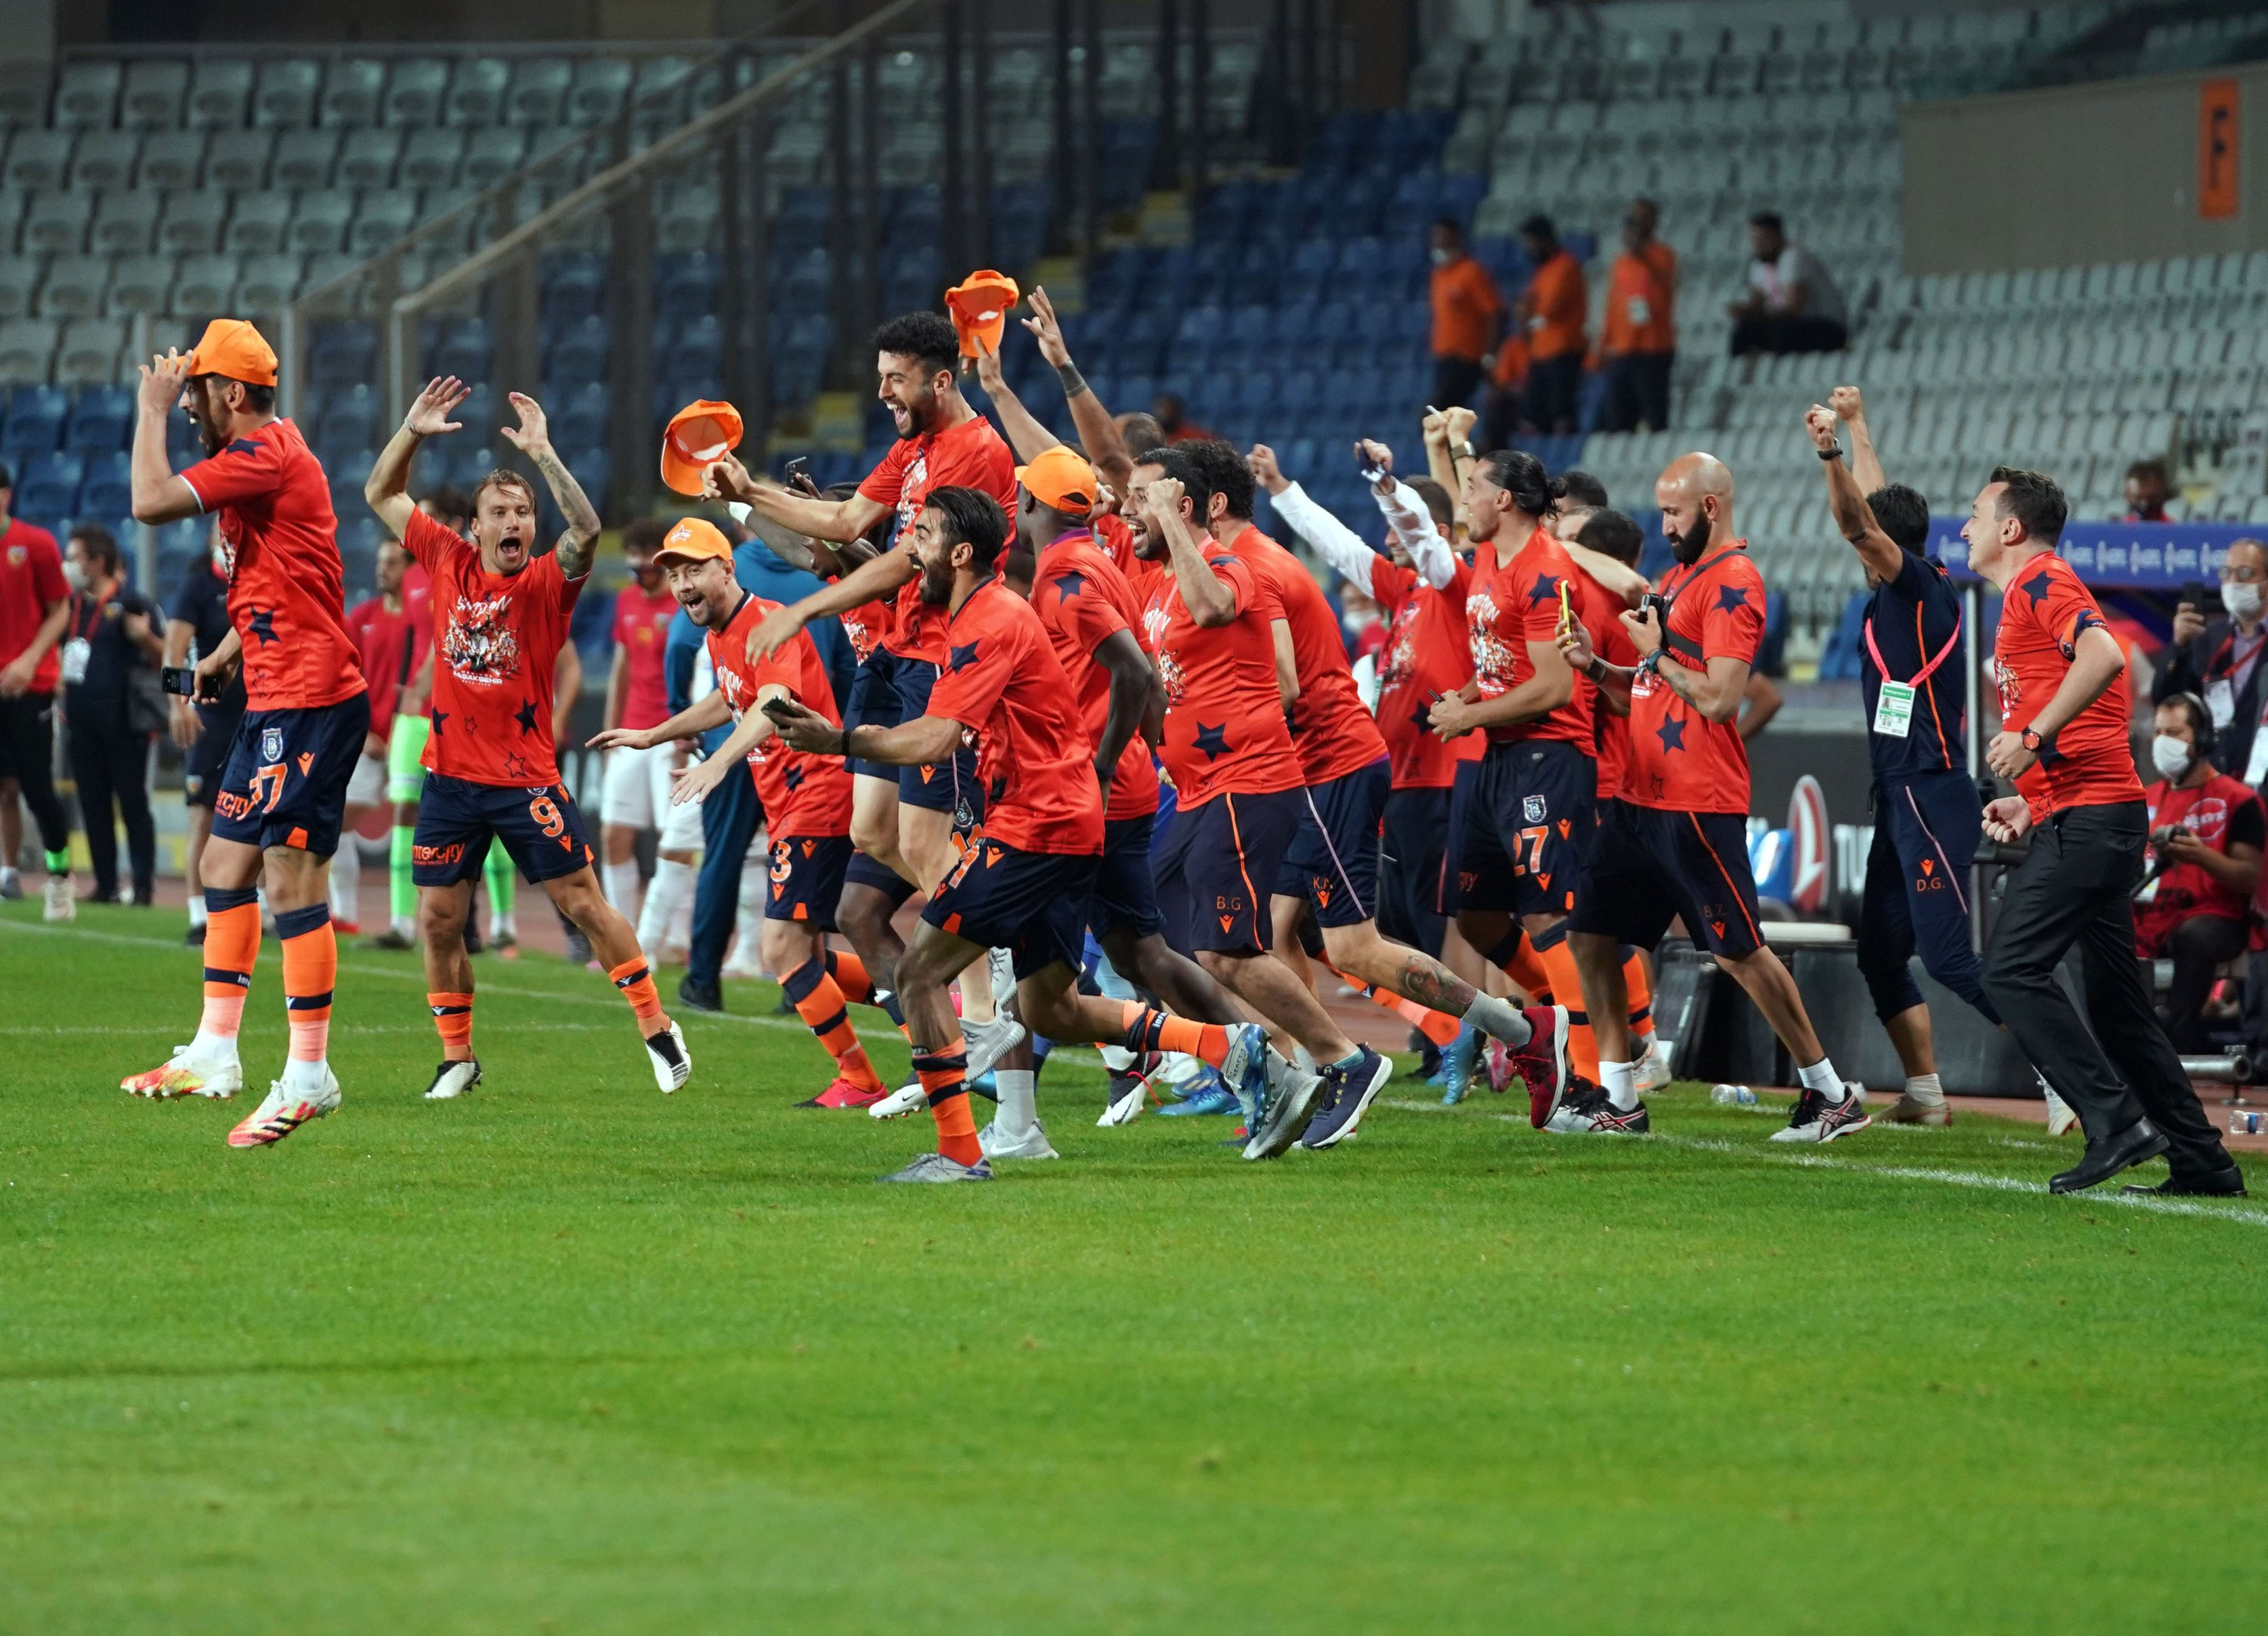 Başakşehir players rush on the pitch after they were declared Süper Lig champions, Istanbul, Turkey, July 19, 2020. (IHA Photo)